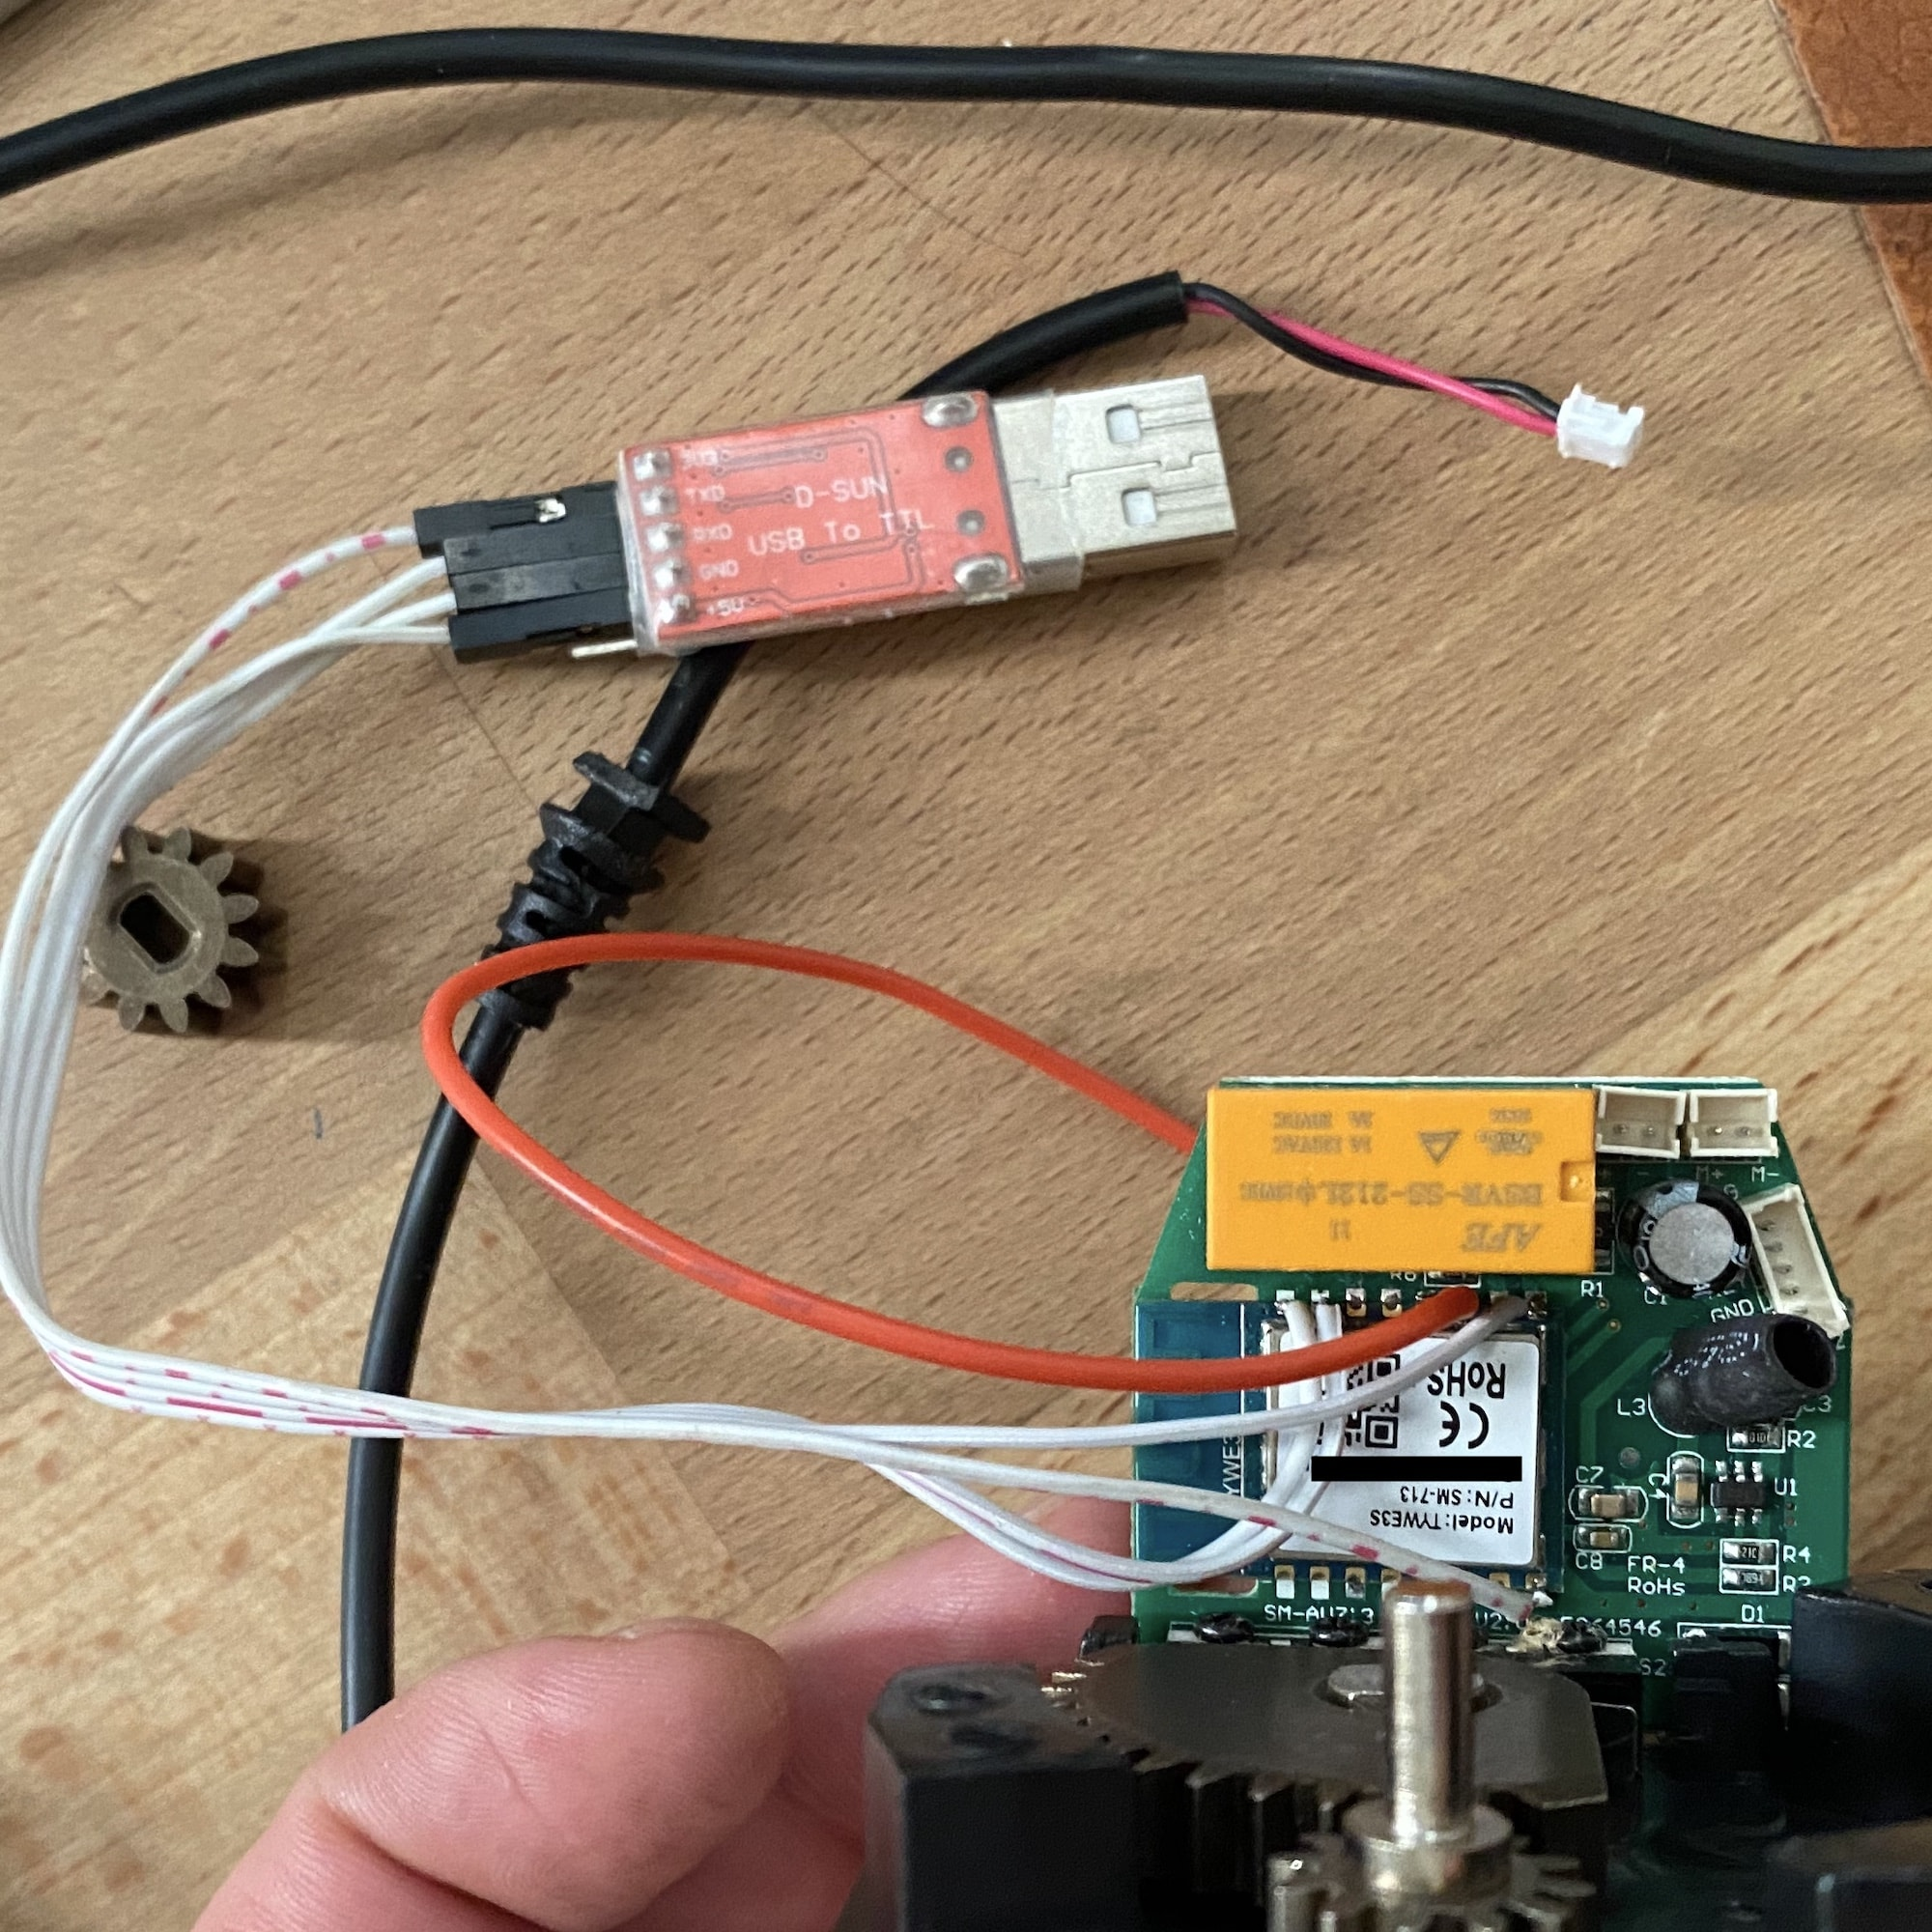 USB to serial UART module connected to the Tuya SM-AW713 valve